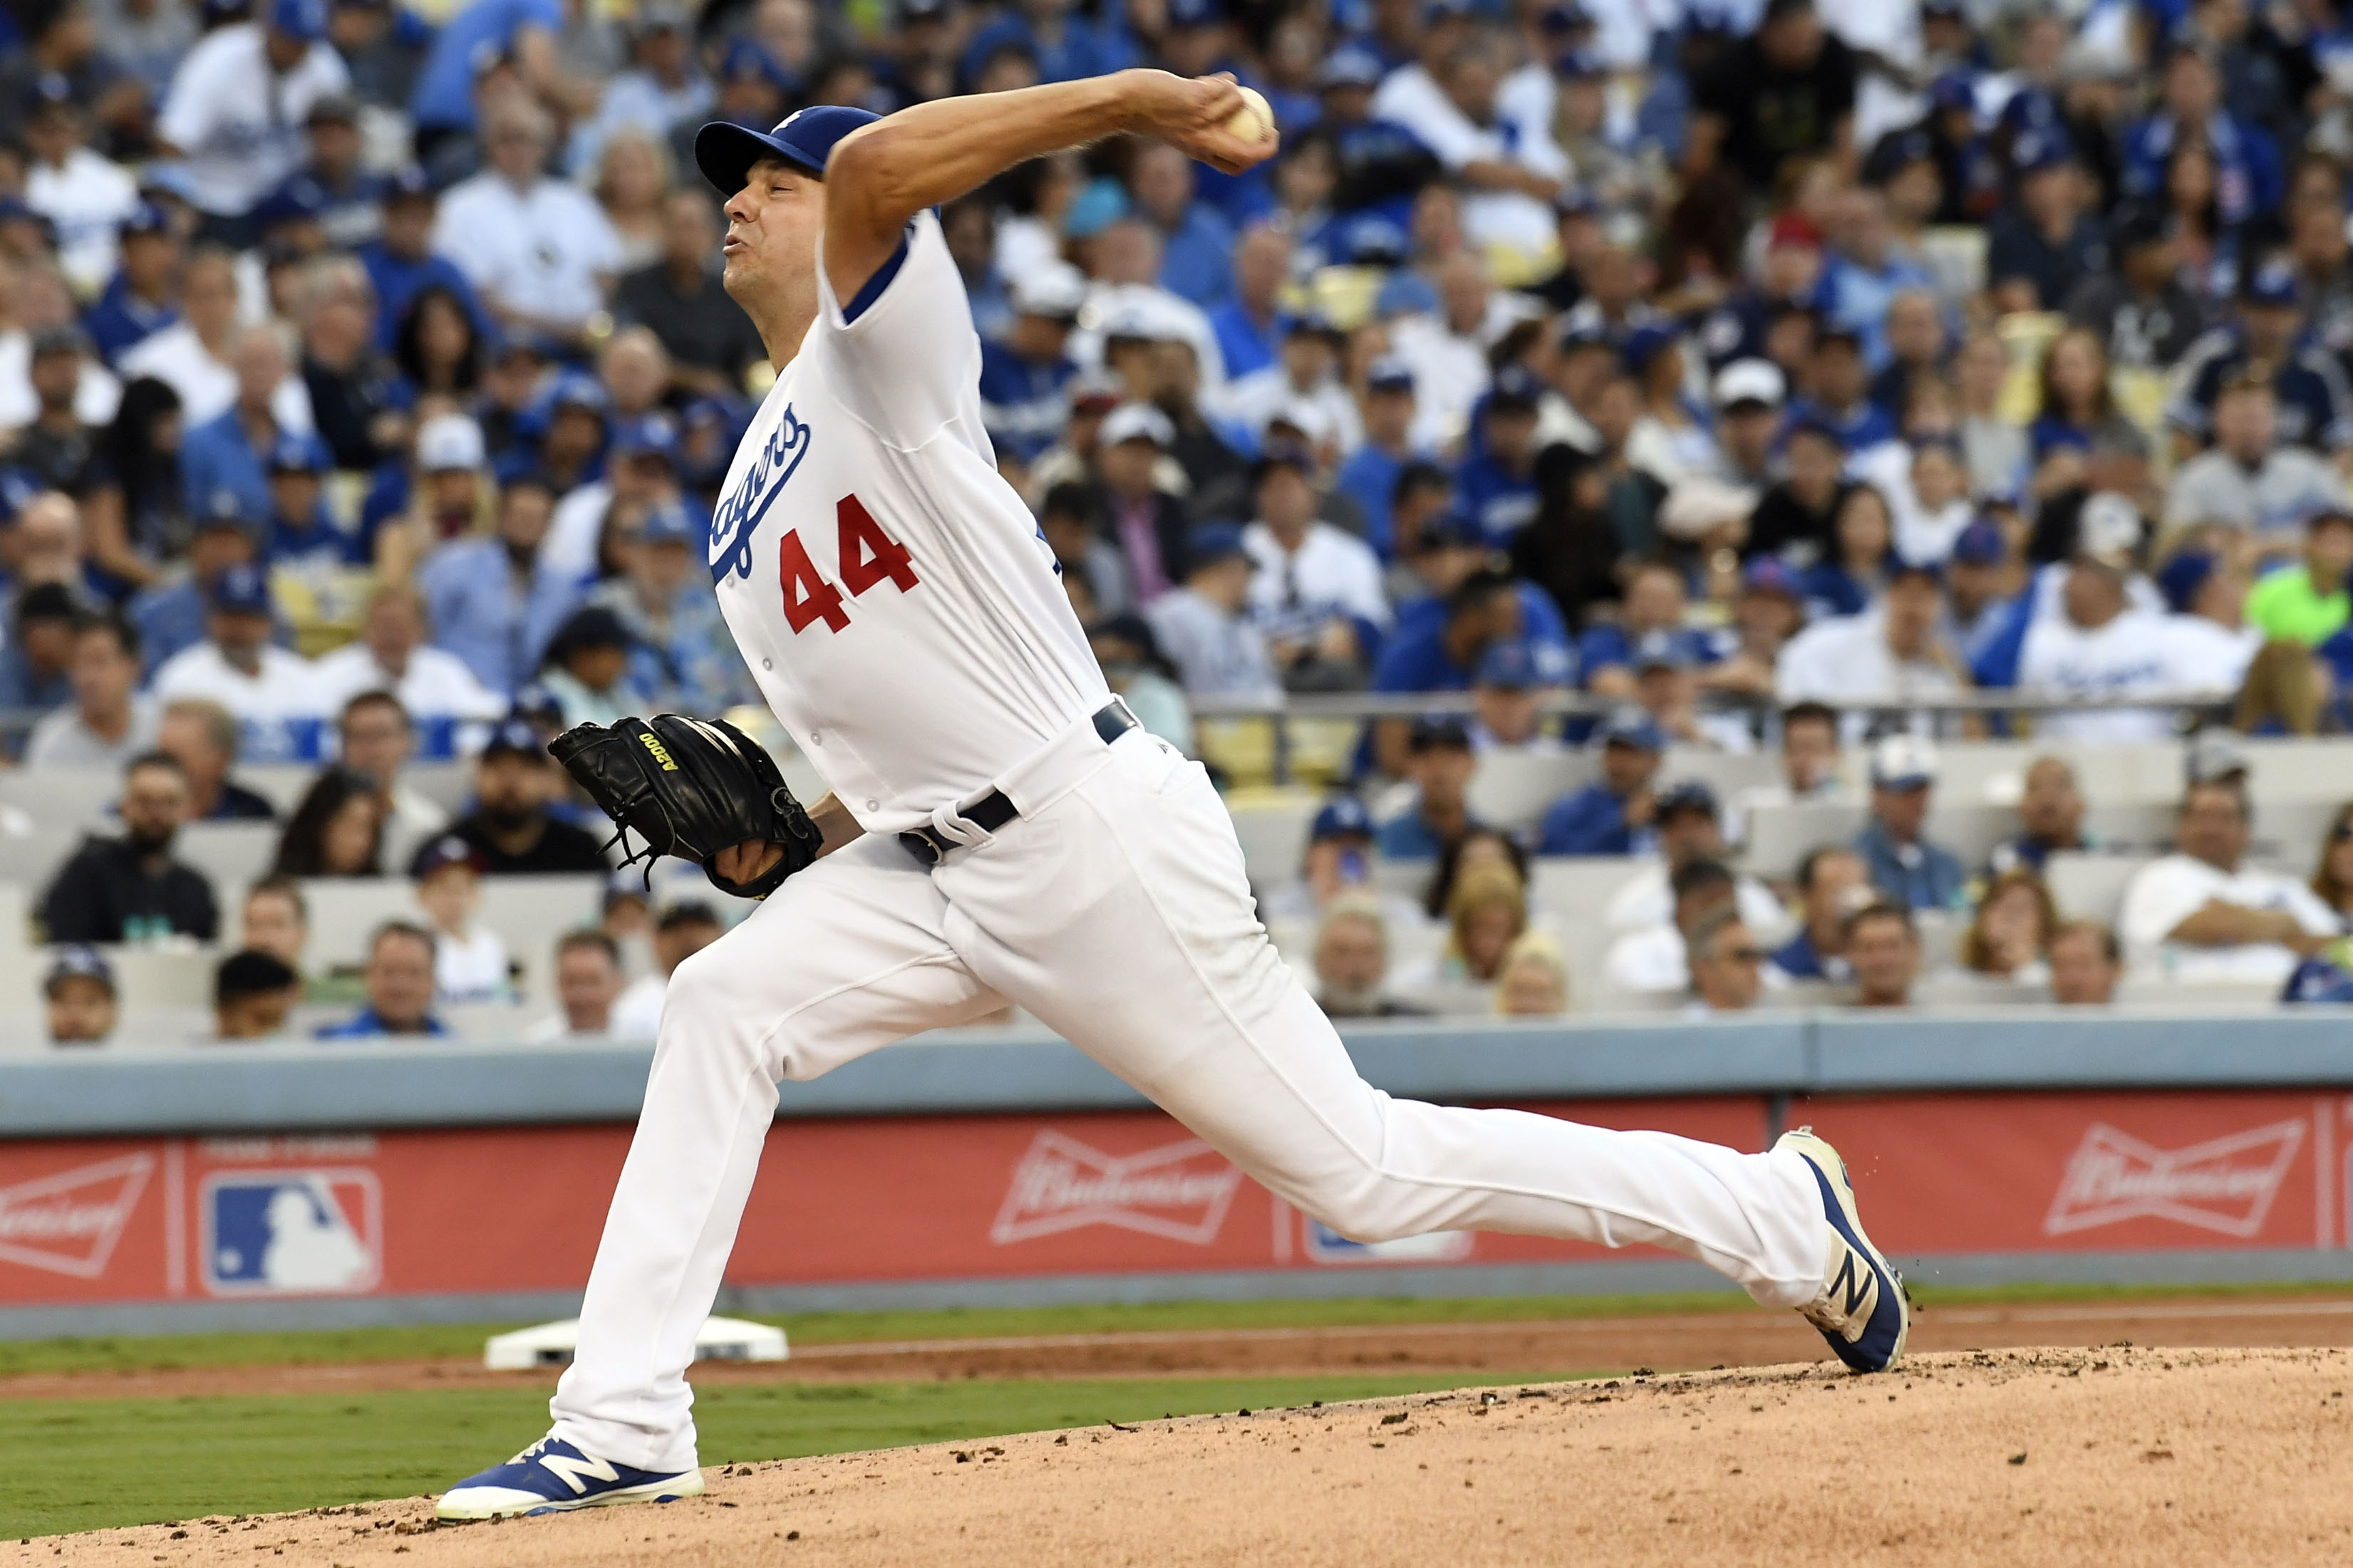 9616378-mlb-nlcs-chicago-cubs-at-los-angeles-dodgers